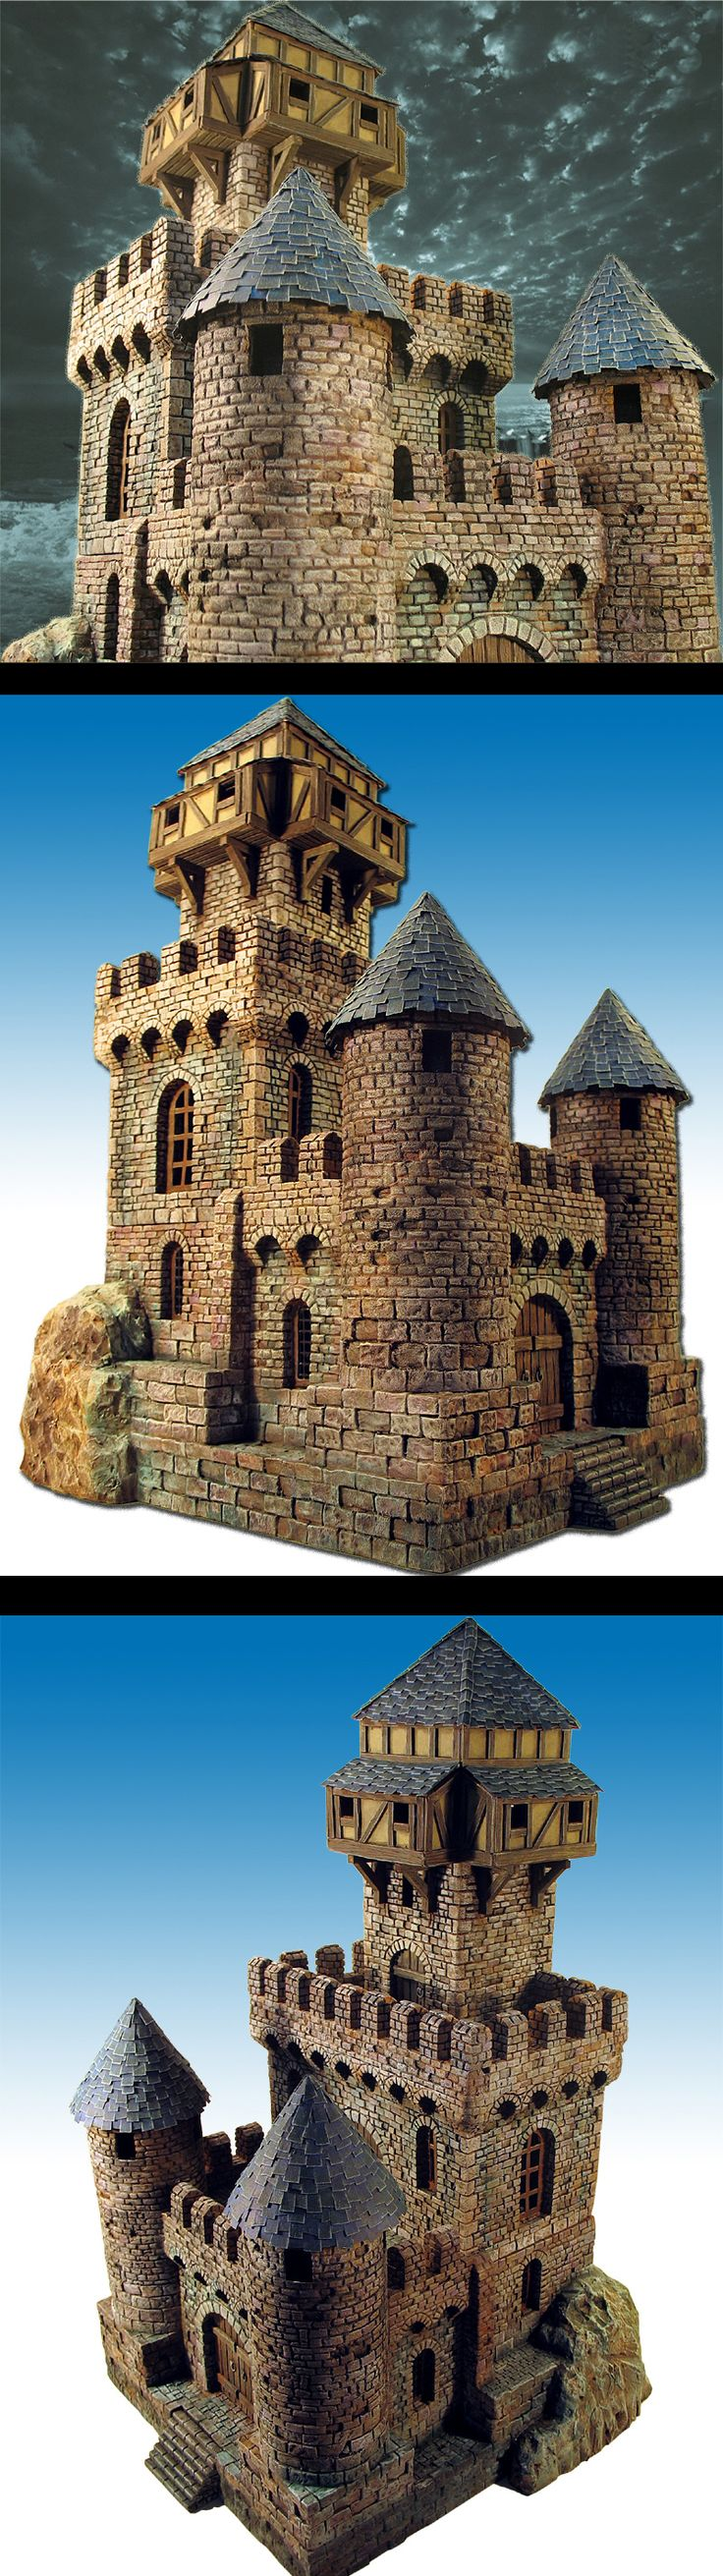 The Tower of Mistral